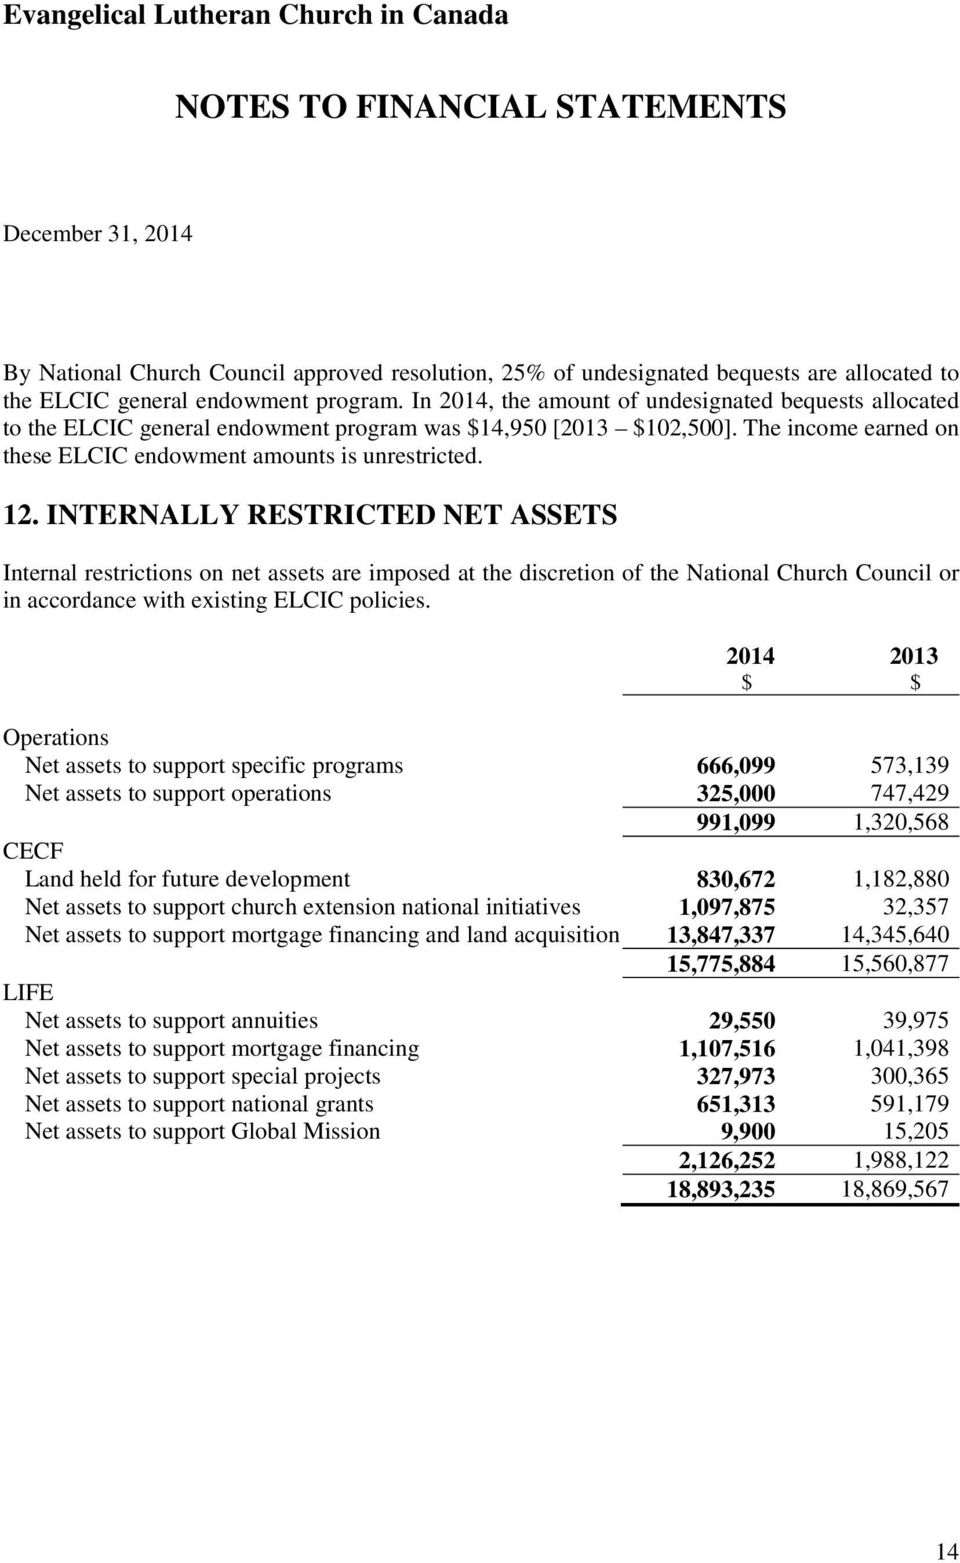 INTERNALLY RESTRICTED NET ASSETS Internal restrictions on net assets are imposed at the discretion of the National Church Council or in accordance with existing ELCIC policies.